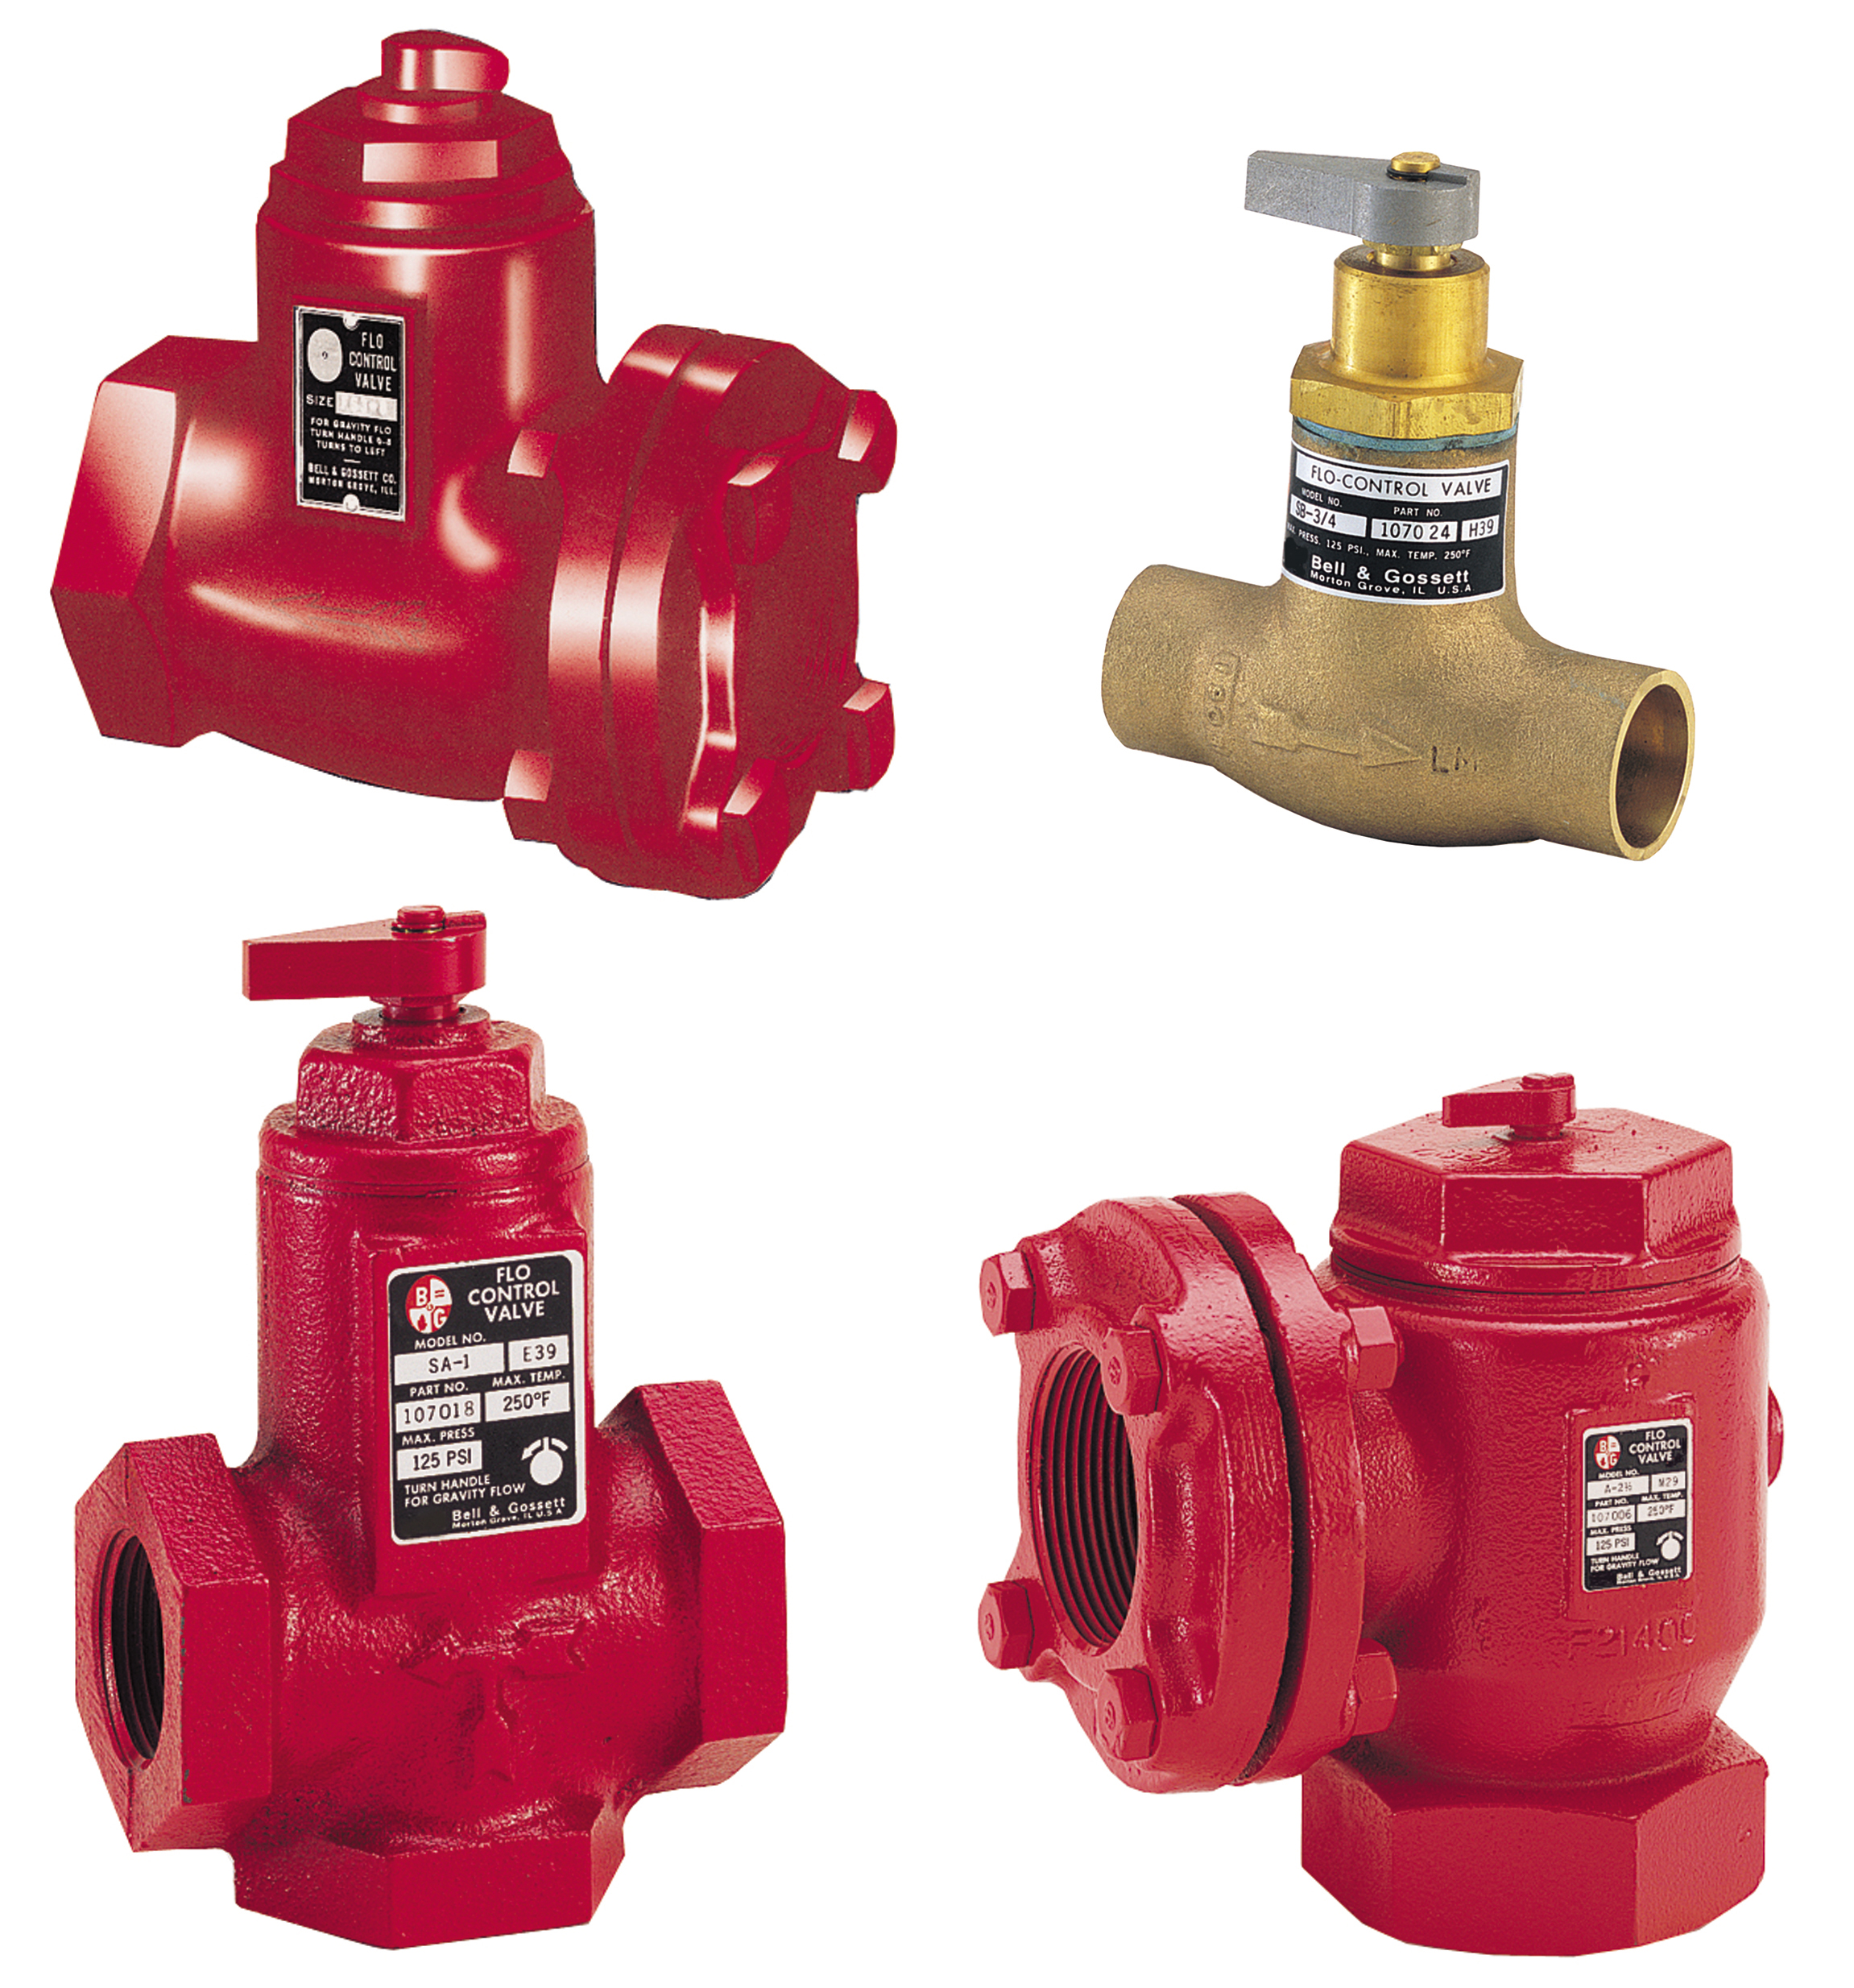 Flo control valves xylem applied water systems united